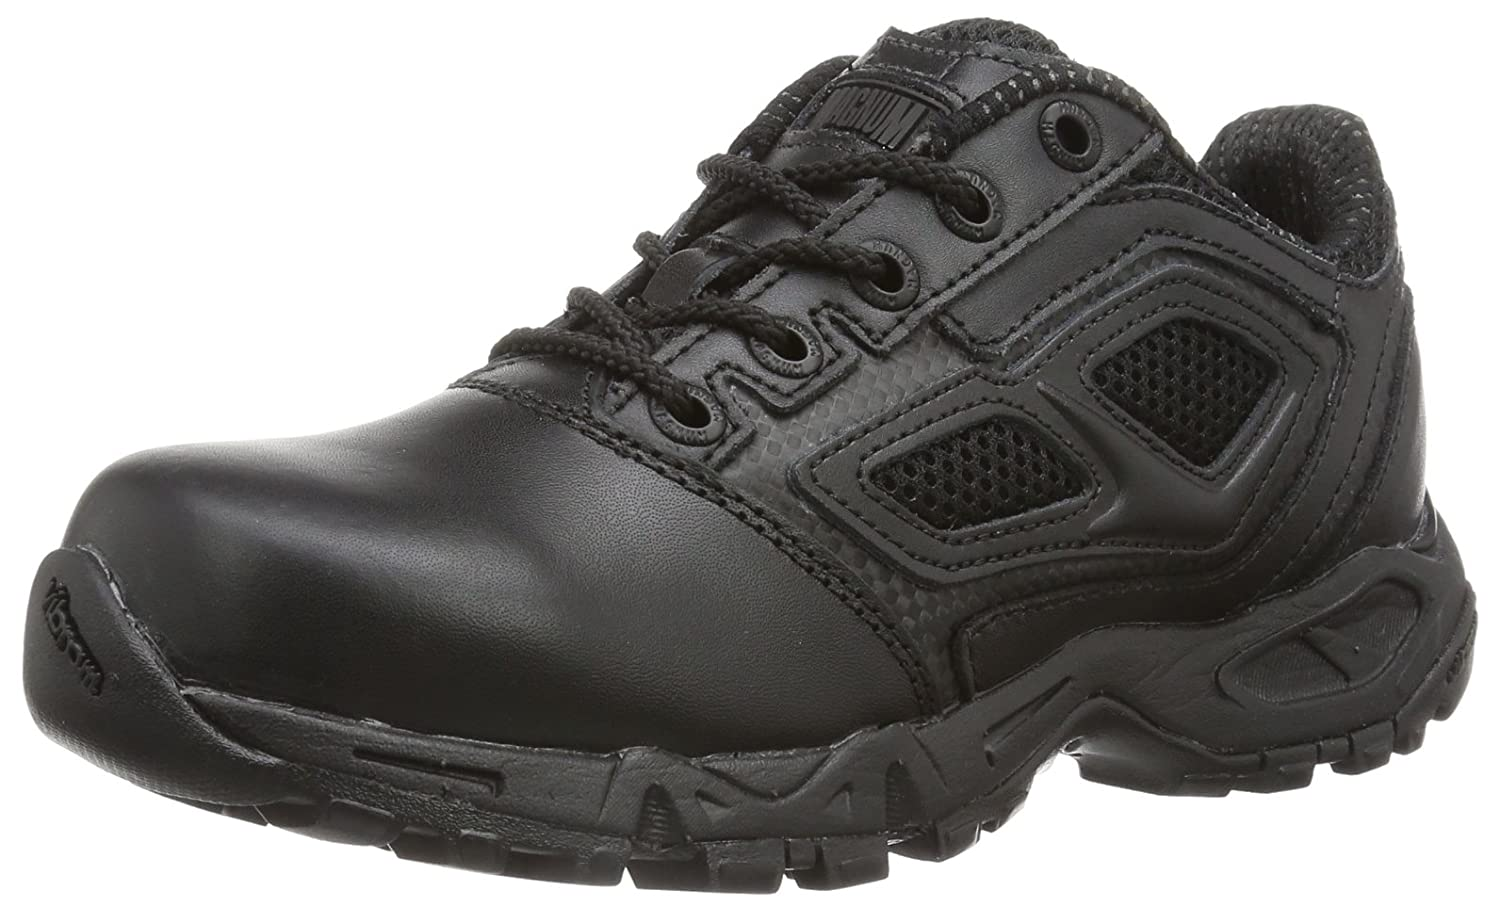 Black (Black 021) Magnum Unisex Adults' Elite Spider 3.0 Work shoes